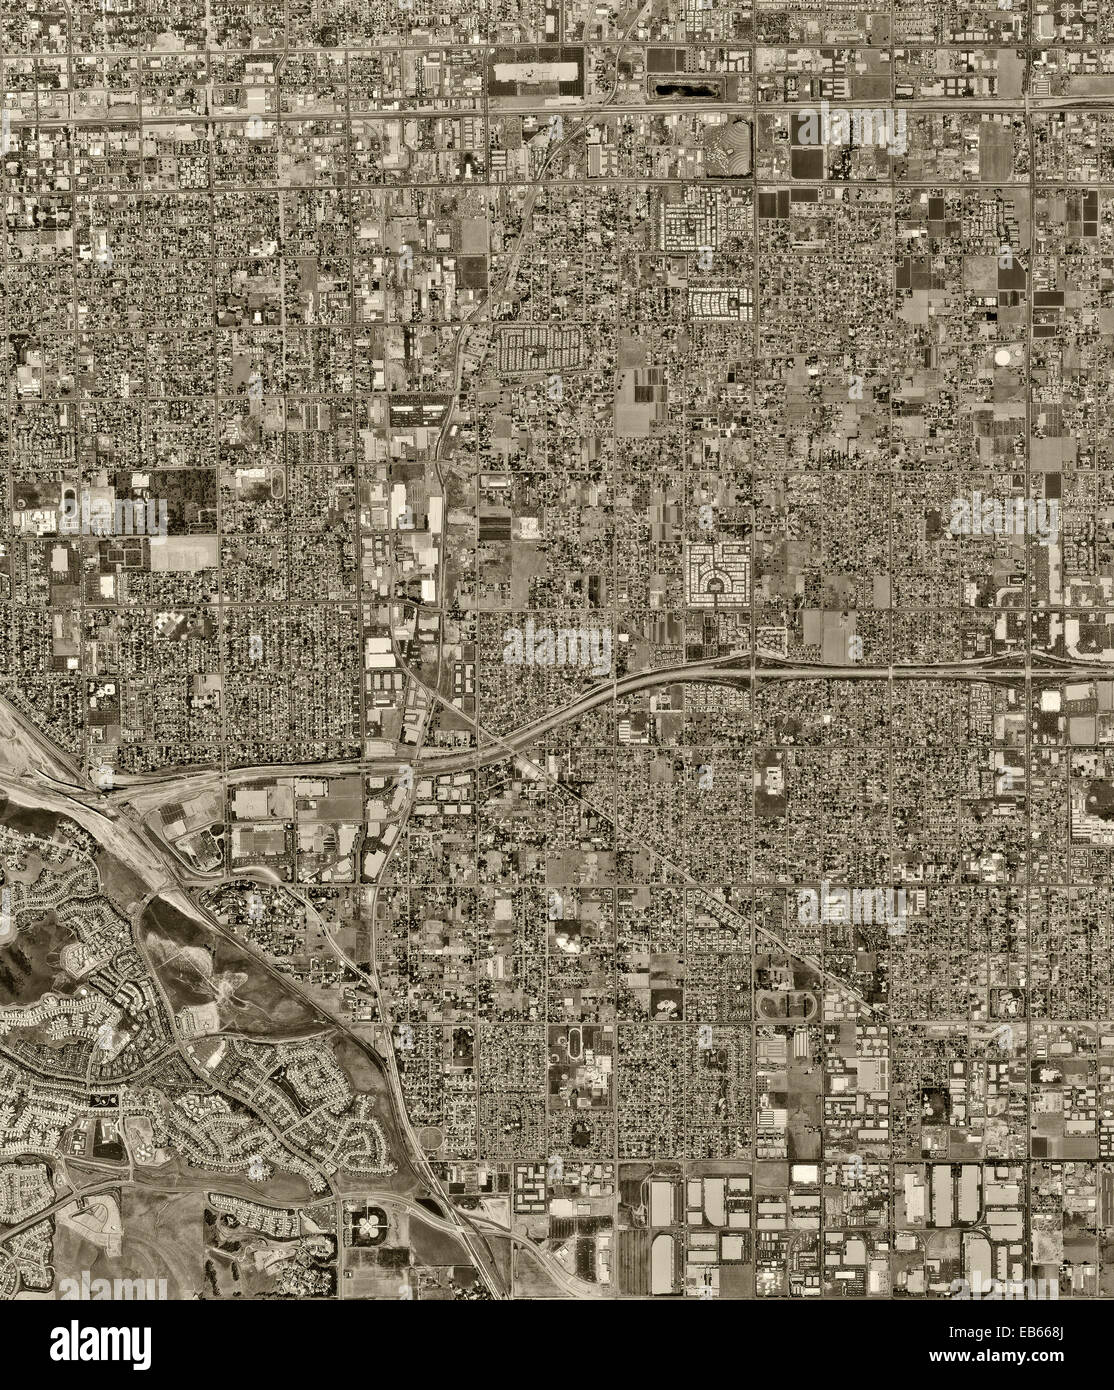 historical aerial photograph, Chino, Los Angeles County, California, 1972 - Stock Image